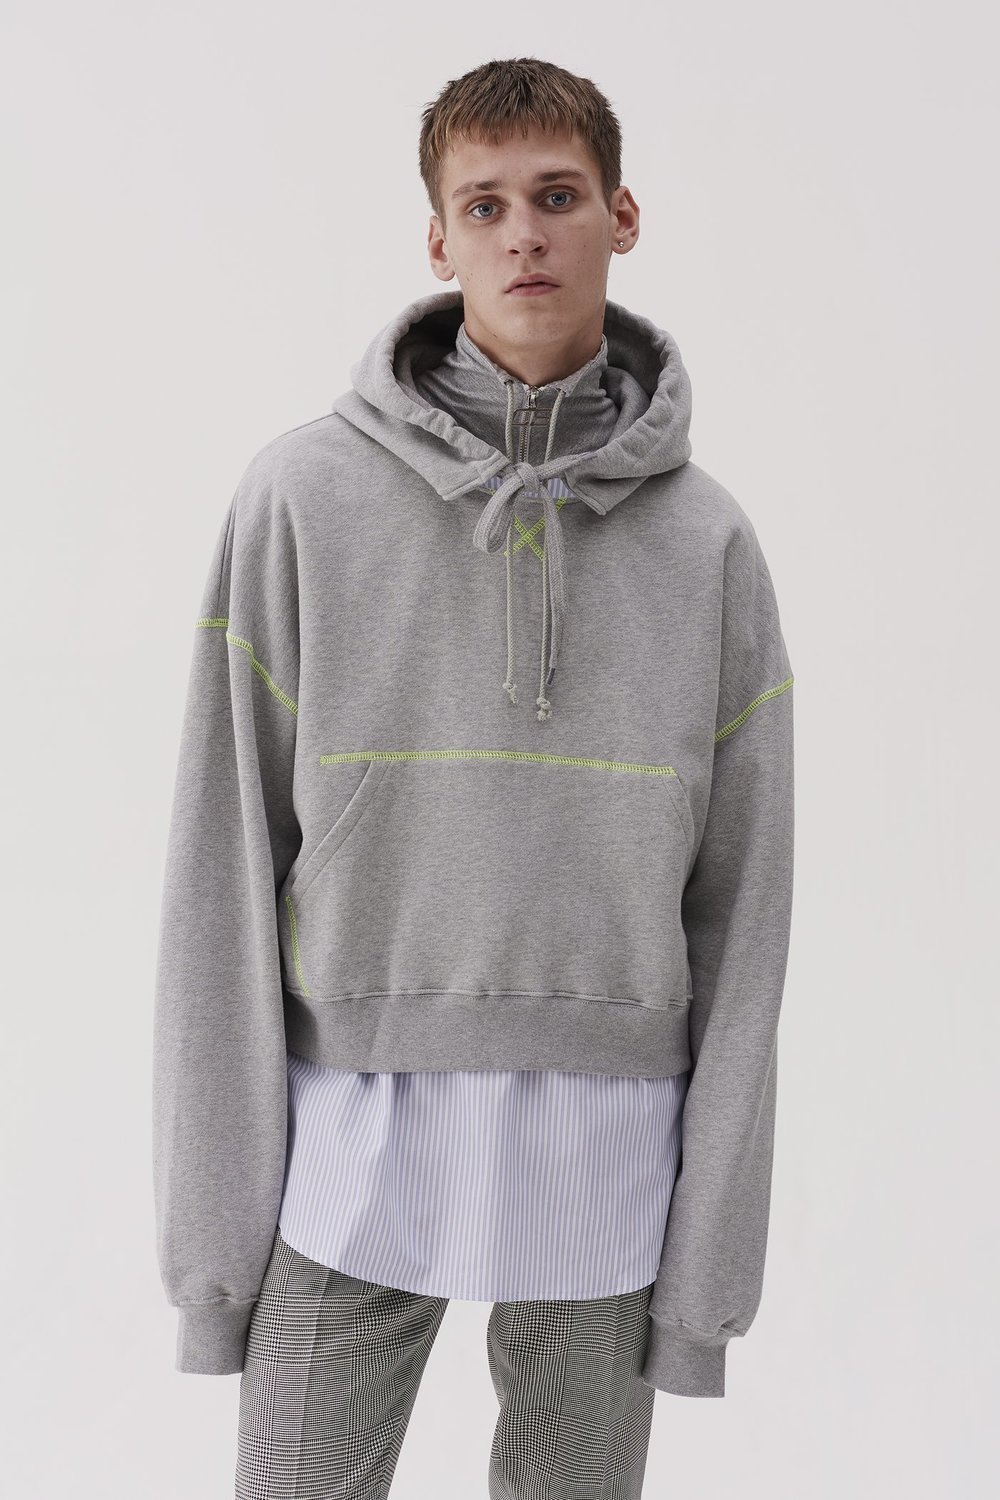 CMMN SWDN sweatshirt - £190 - Some people would wear this out.